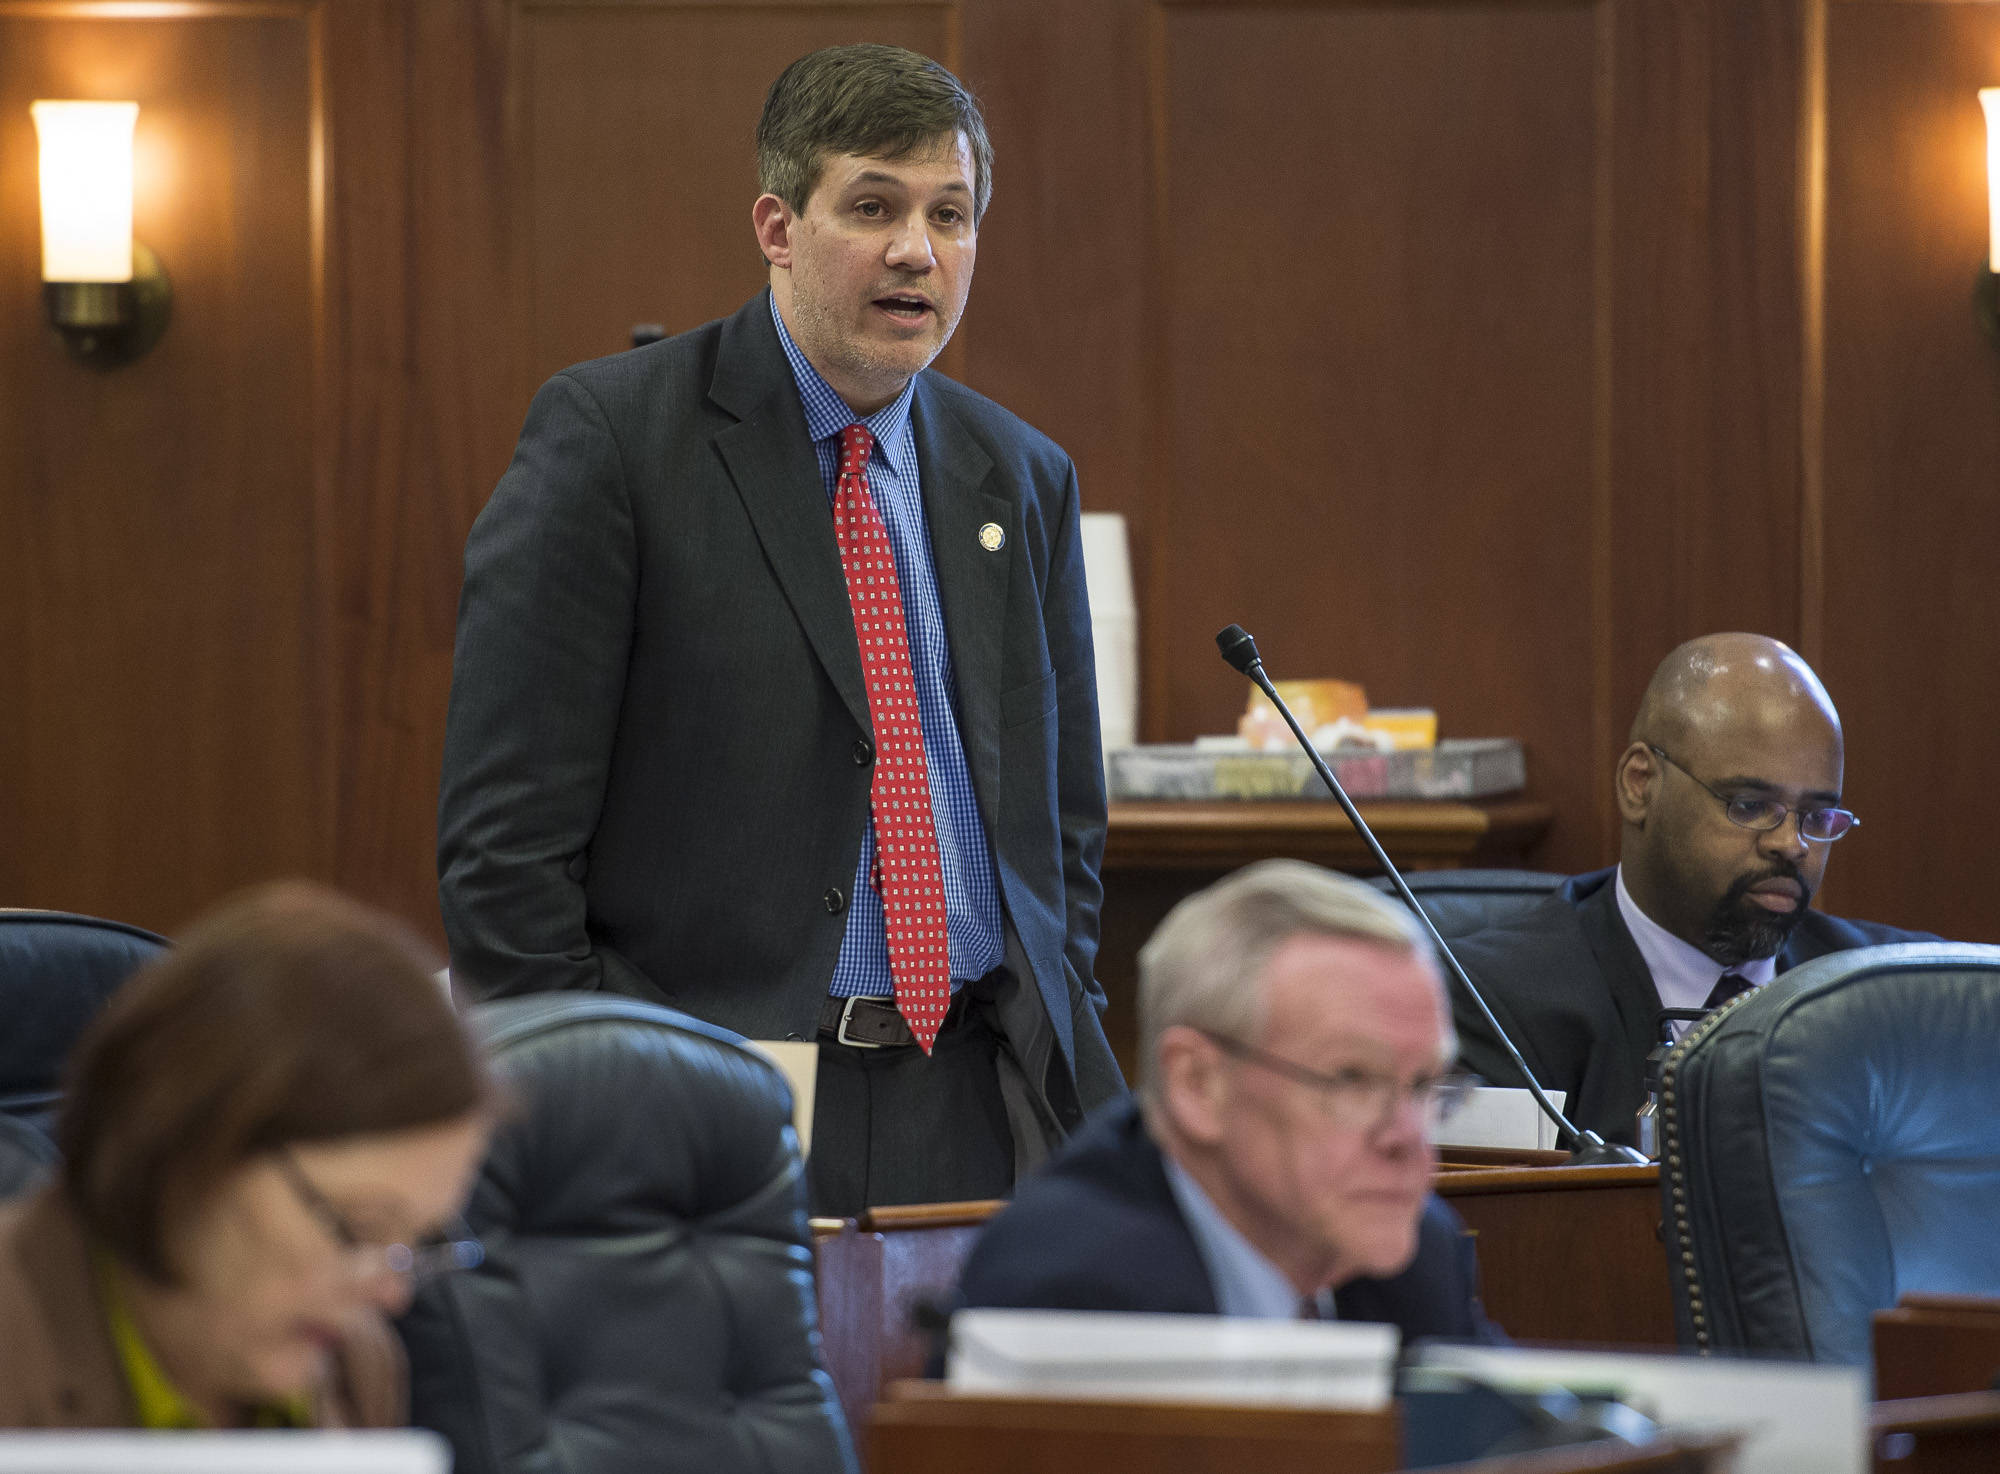 Sen. Bill Wielechowski, D-Anchorage, speaks to his amendment to the state's operating budget to inflation proof the Alaska Permanent Fund in the Senate at the Capitol on Thursday, April 12, 2018. The amendment was voted down 11-9. (Michael Penn | Juneau Empire)